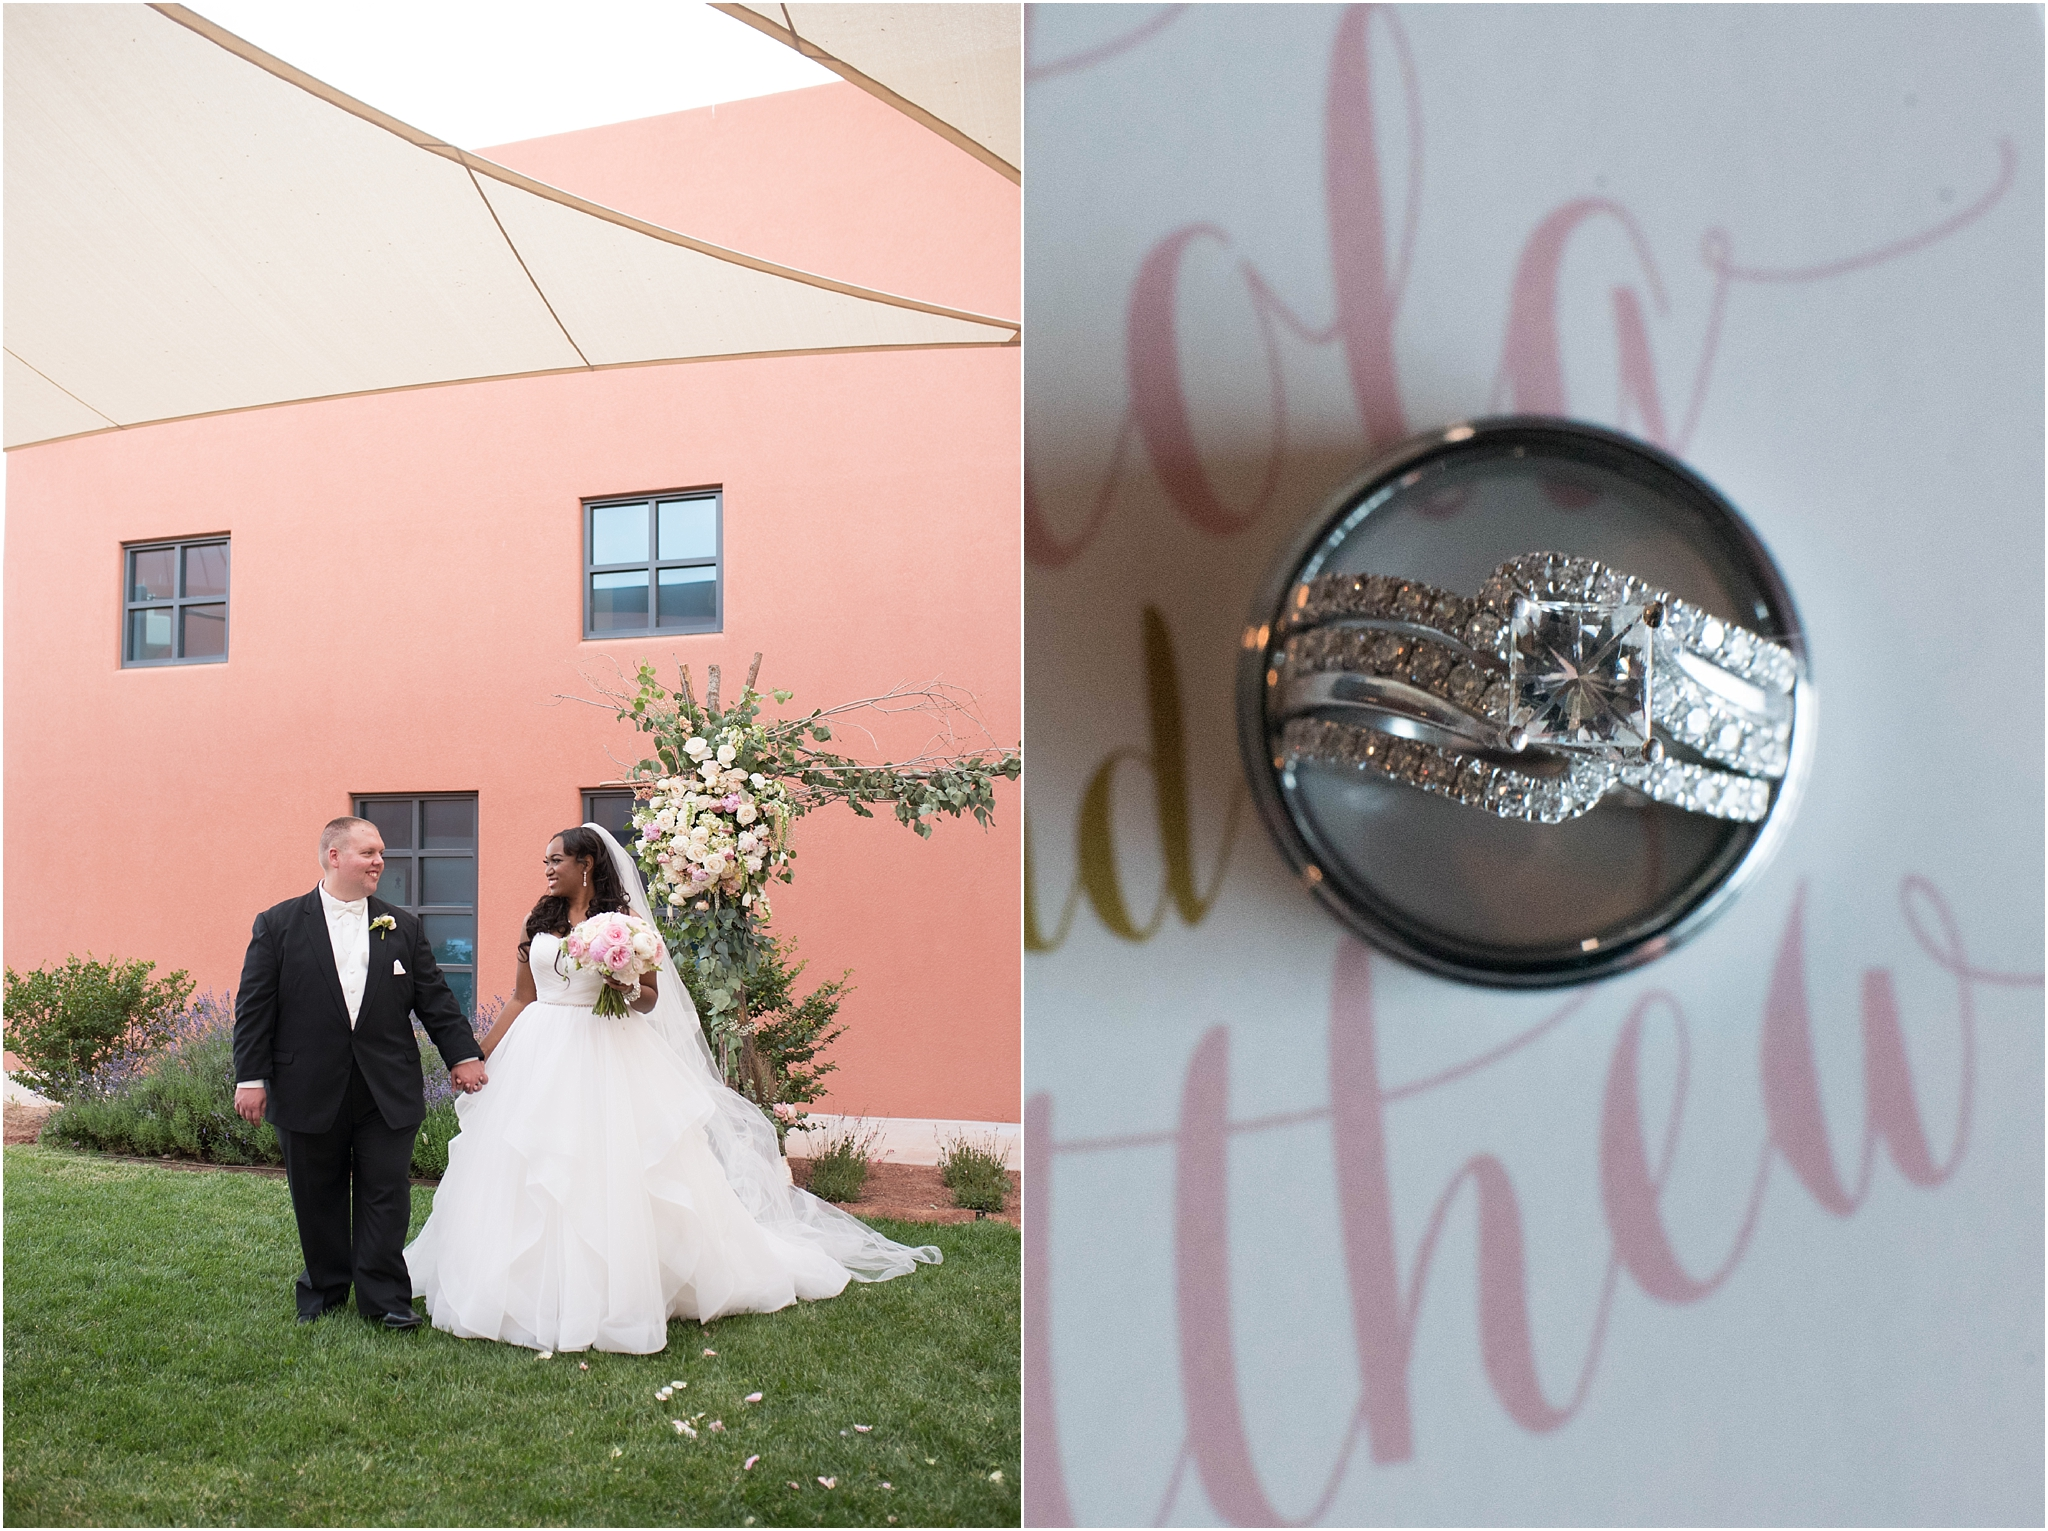 isleta-resort-wedding-albuquerque-new-mexico-top-wedding-photographer